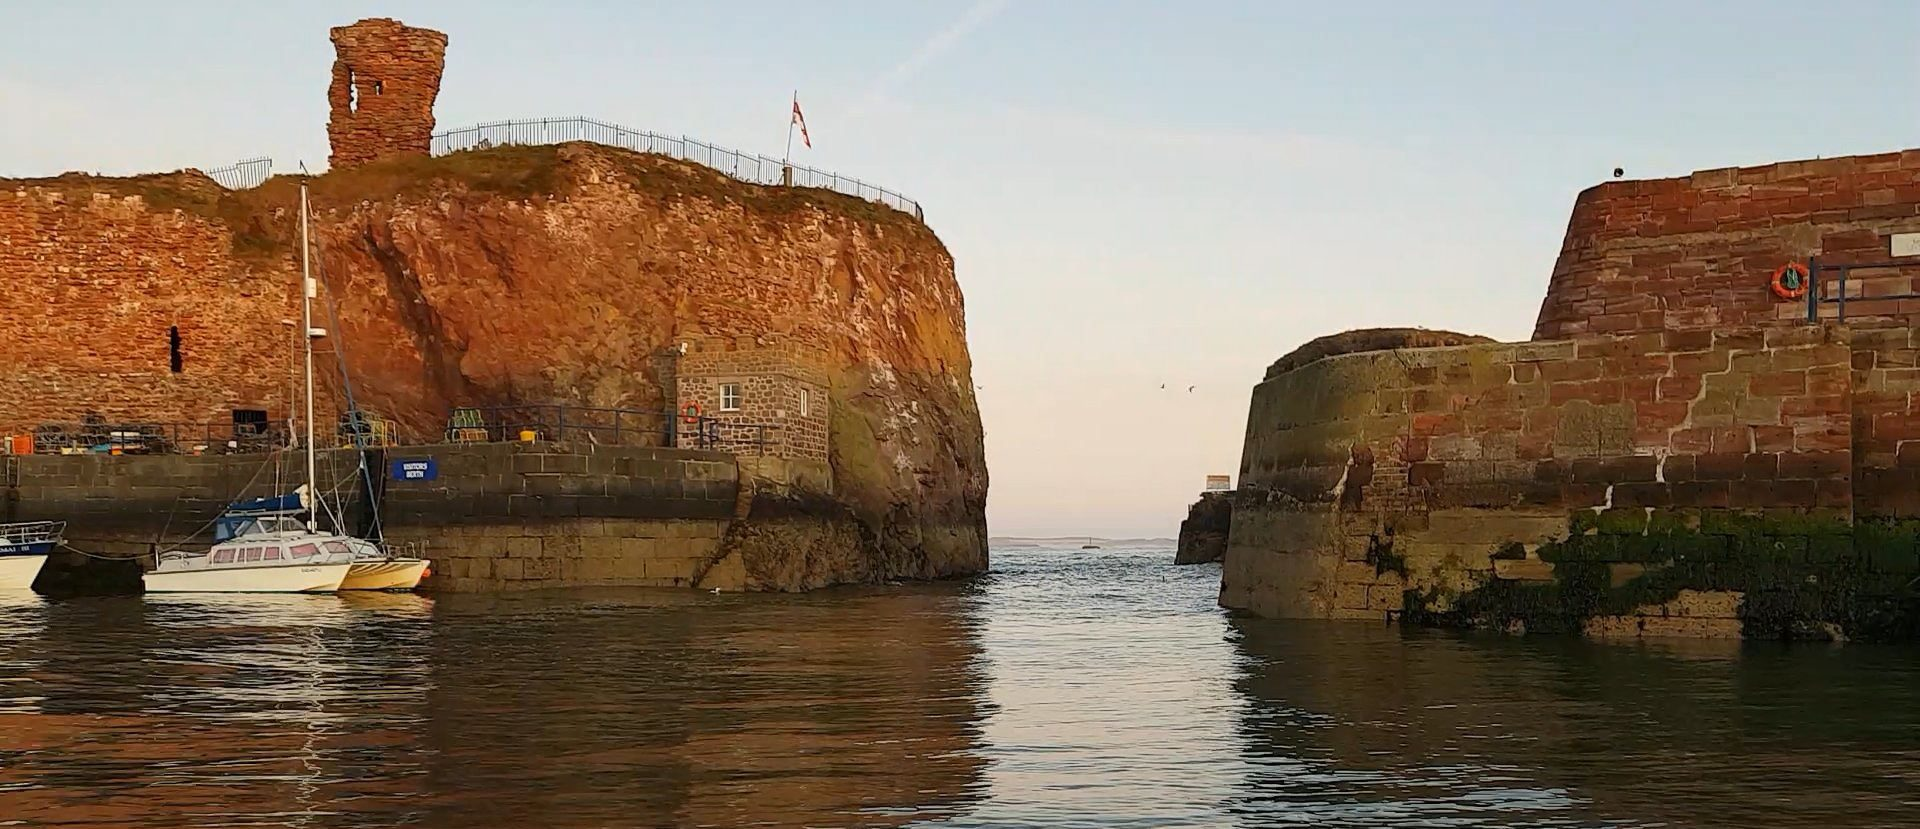 The remains of the old castle on the cliff guard the narrow entrance to Dunbar harbour